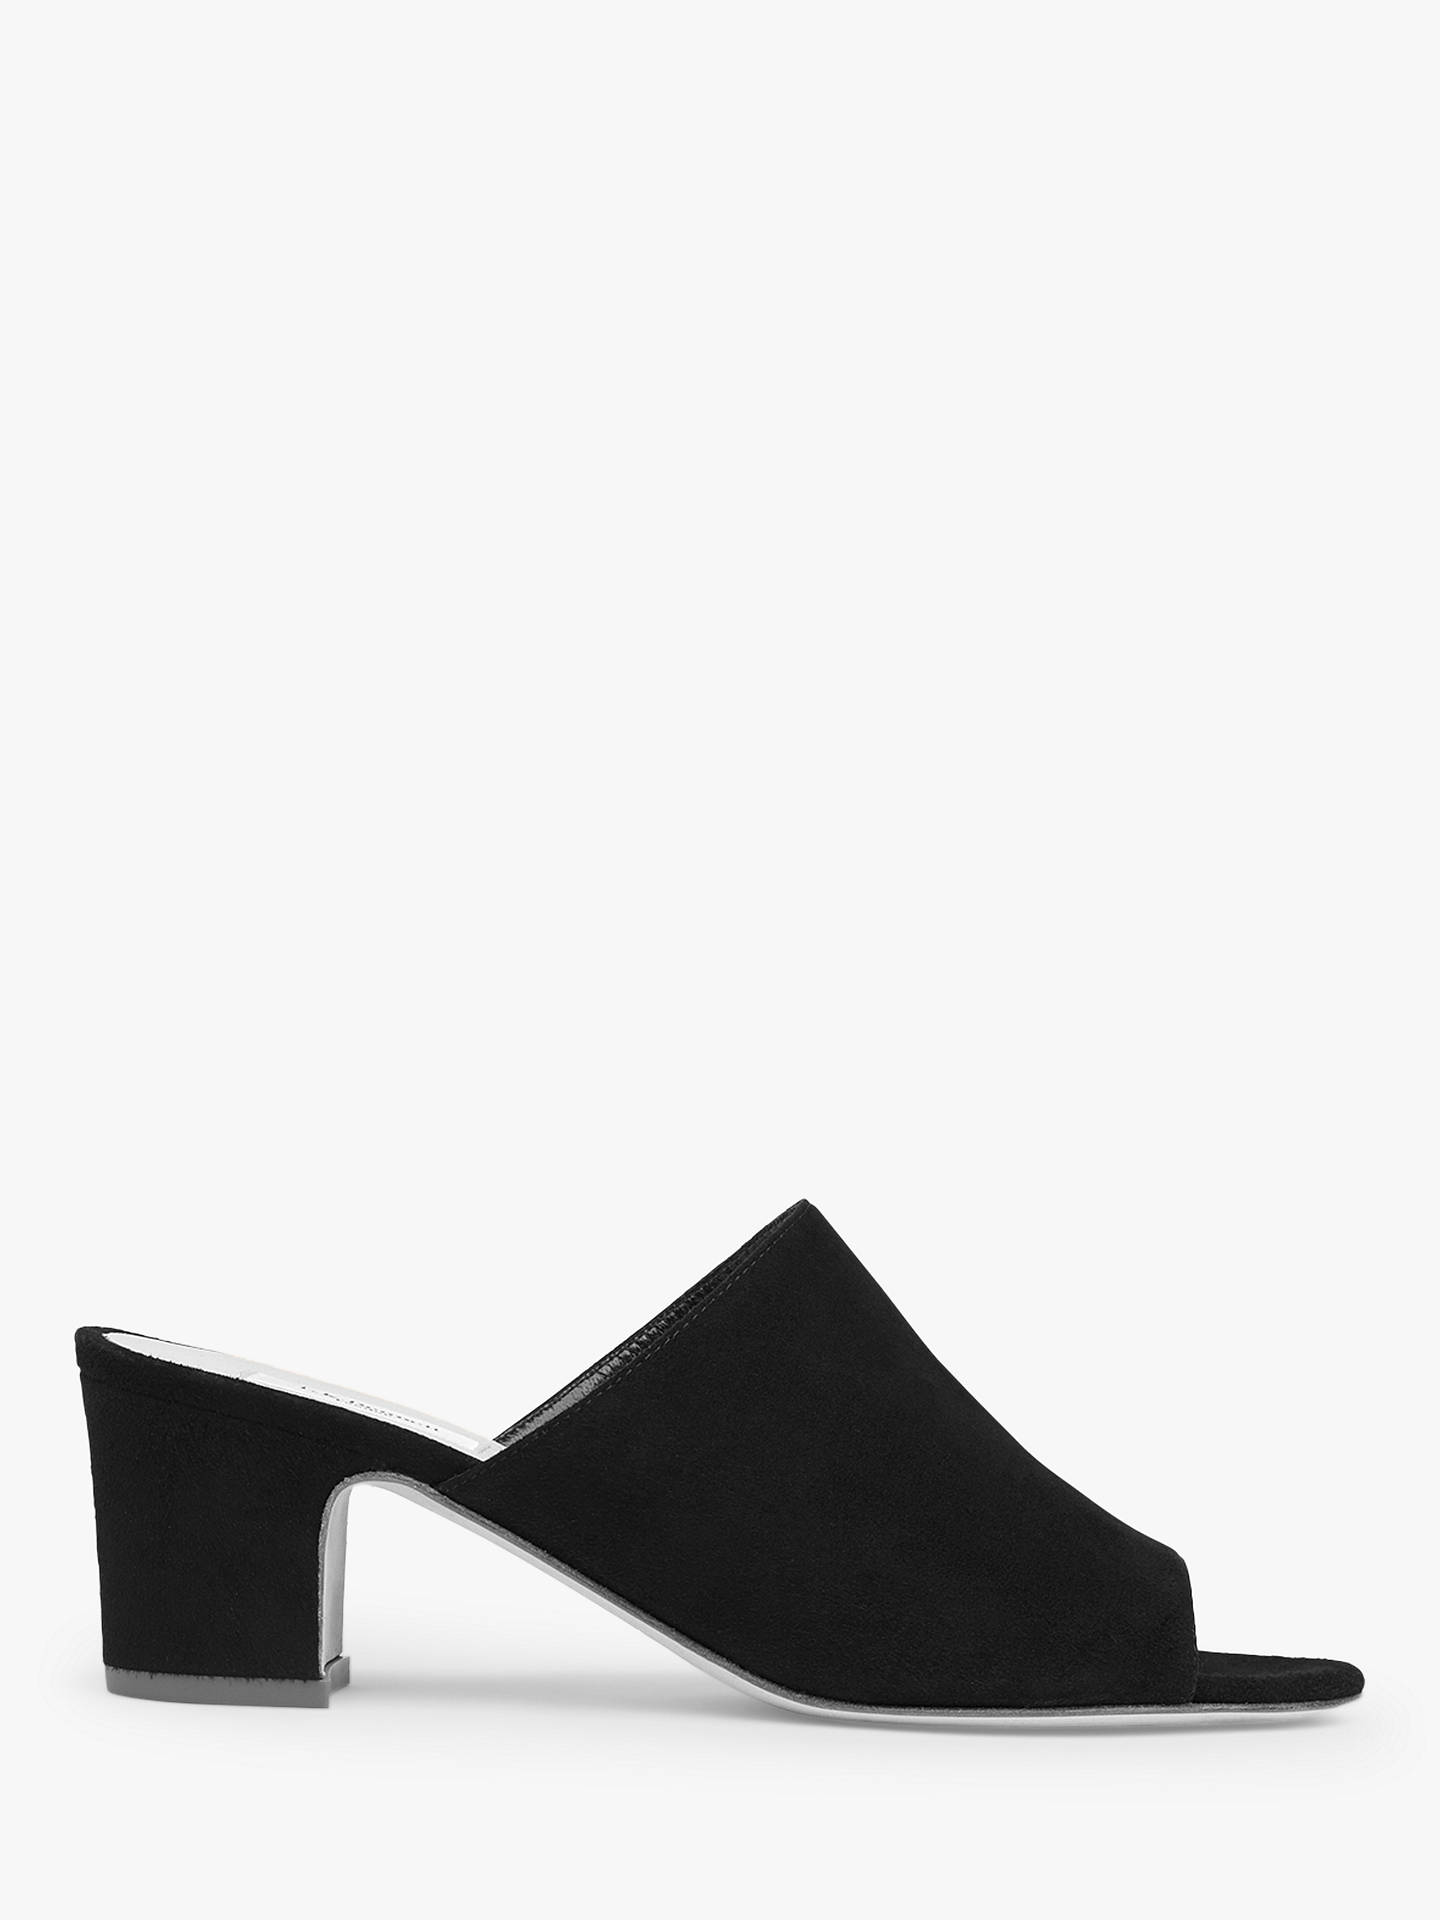 new With Tags 9.5 Open Toe With Block Heel Mules Sz Sophisticated Technologies